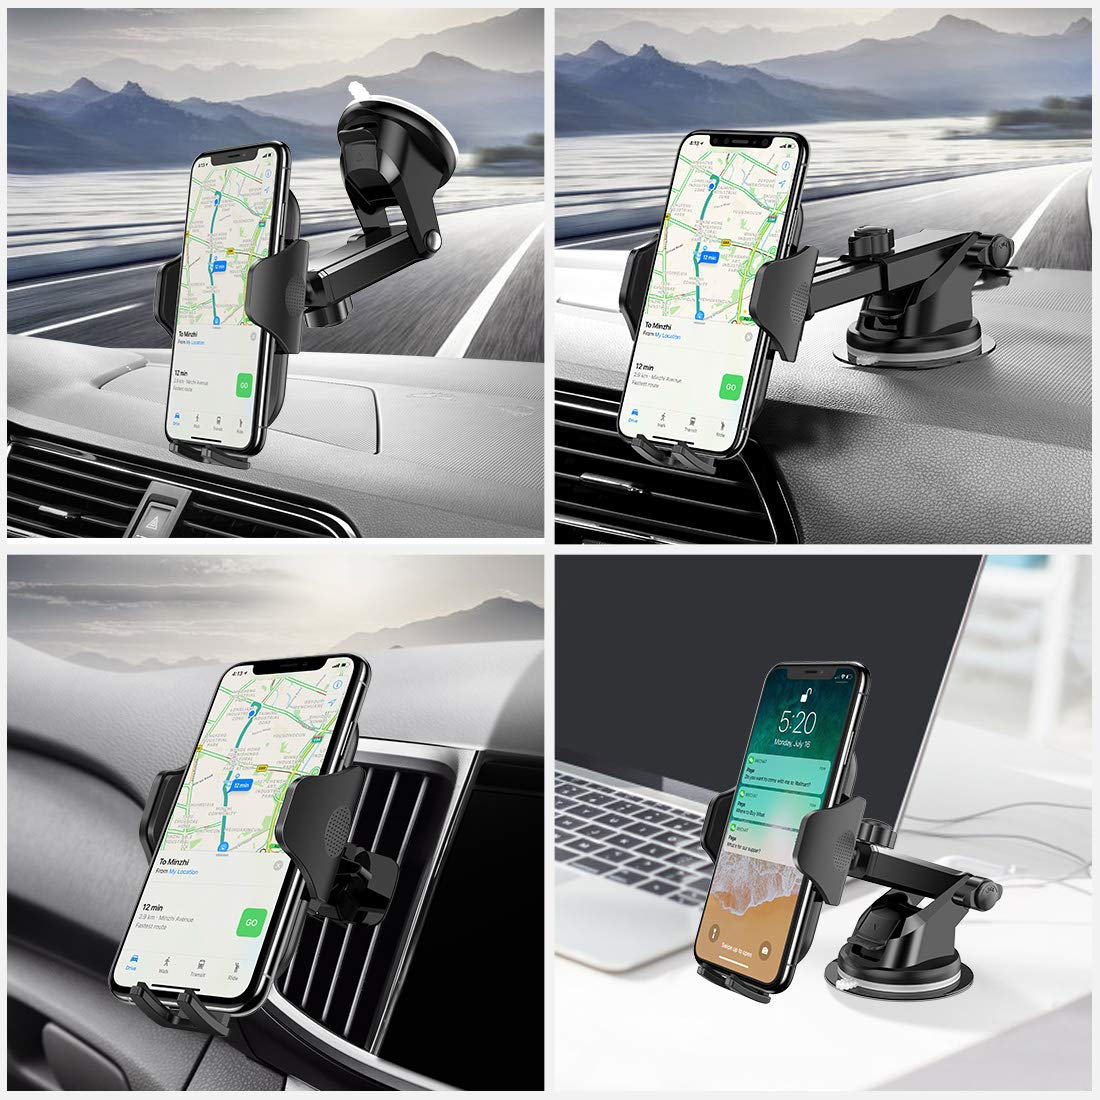 Universal Car Phone Mount VICSEED Car Phone Holder for Car Dashboard Windshield Air Vent Adjustable Long Arm Strong Suction Cell Phone Car Mount Fit for iPhone X XS Max XR Samsung Galaxy Note 10 S10 by VICSEED (Image #7)